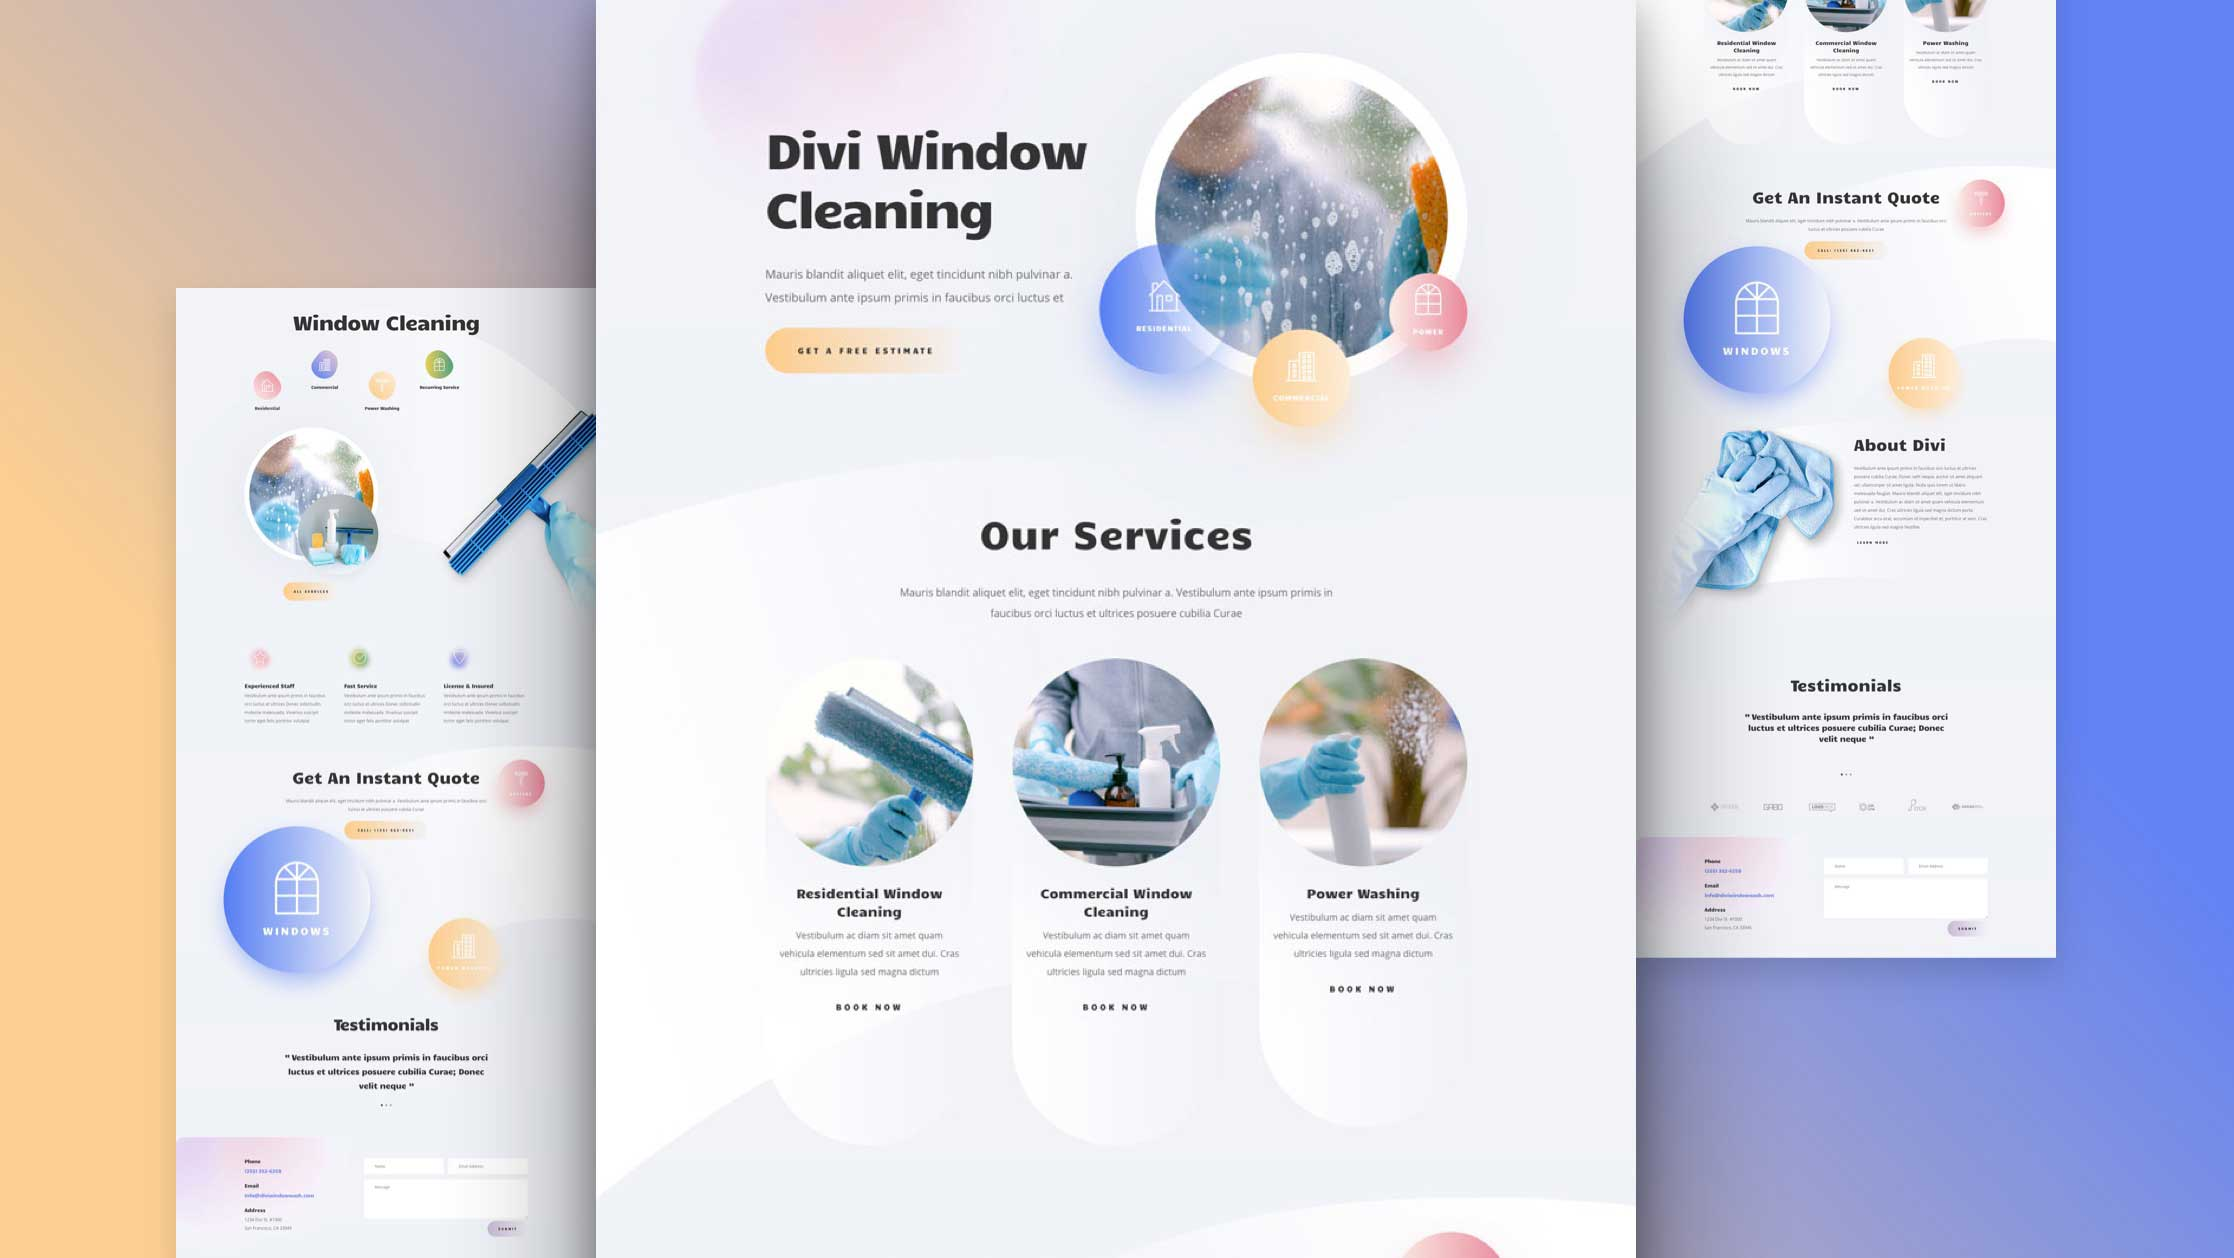 Get a FREE Window Cleaning Layout Pack for Divi